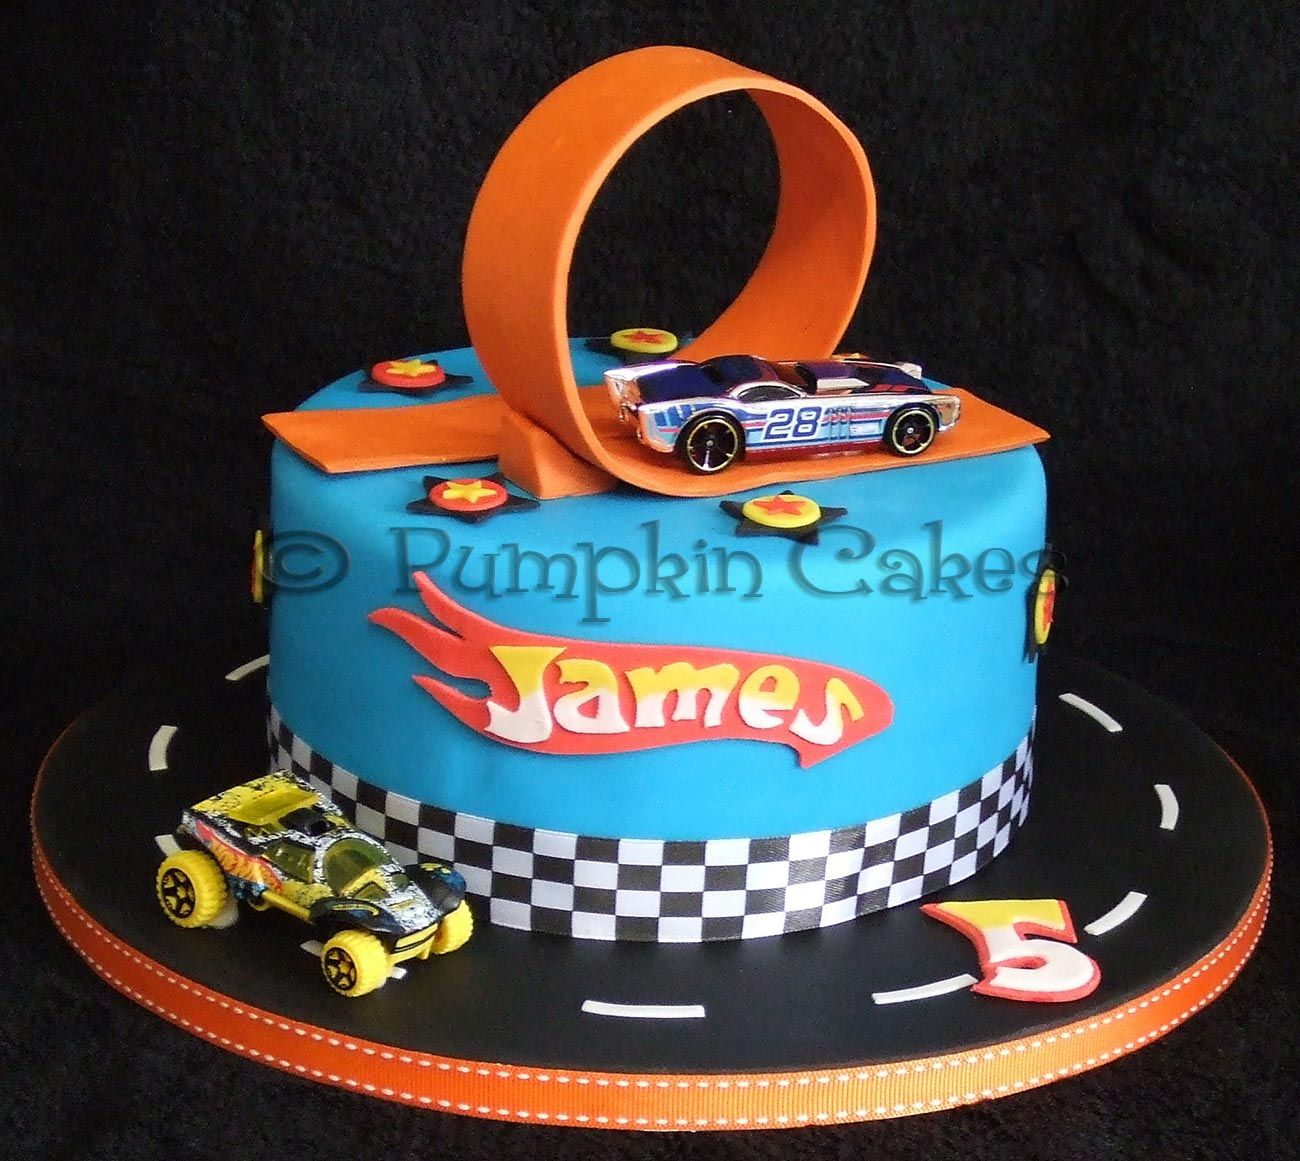 Astounding Yummy Chocolate Mud Cake In A Hot Wheels Design With Images Funny Birthday Cards Online Chimdamsfinfo